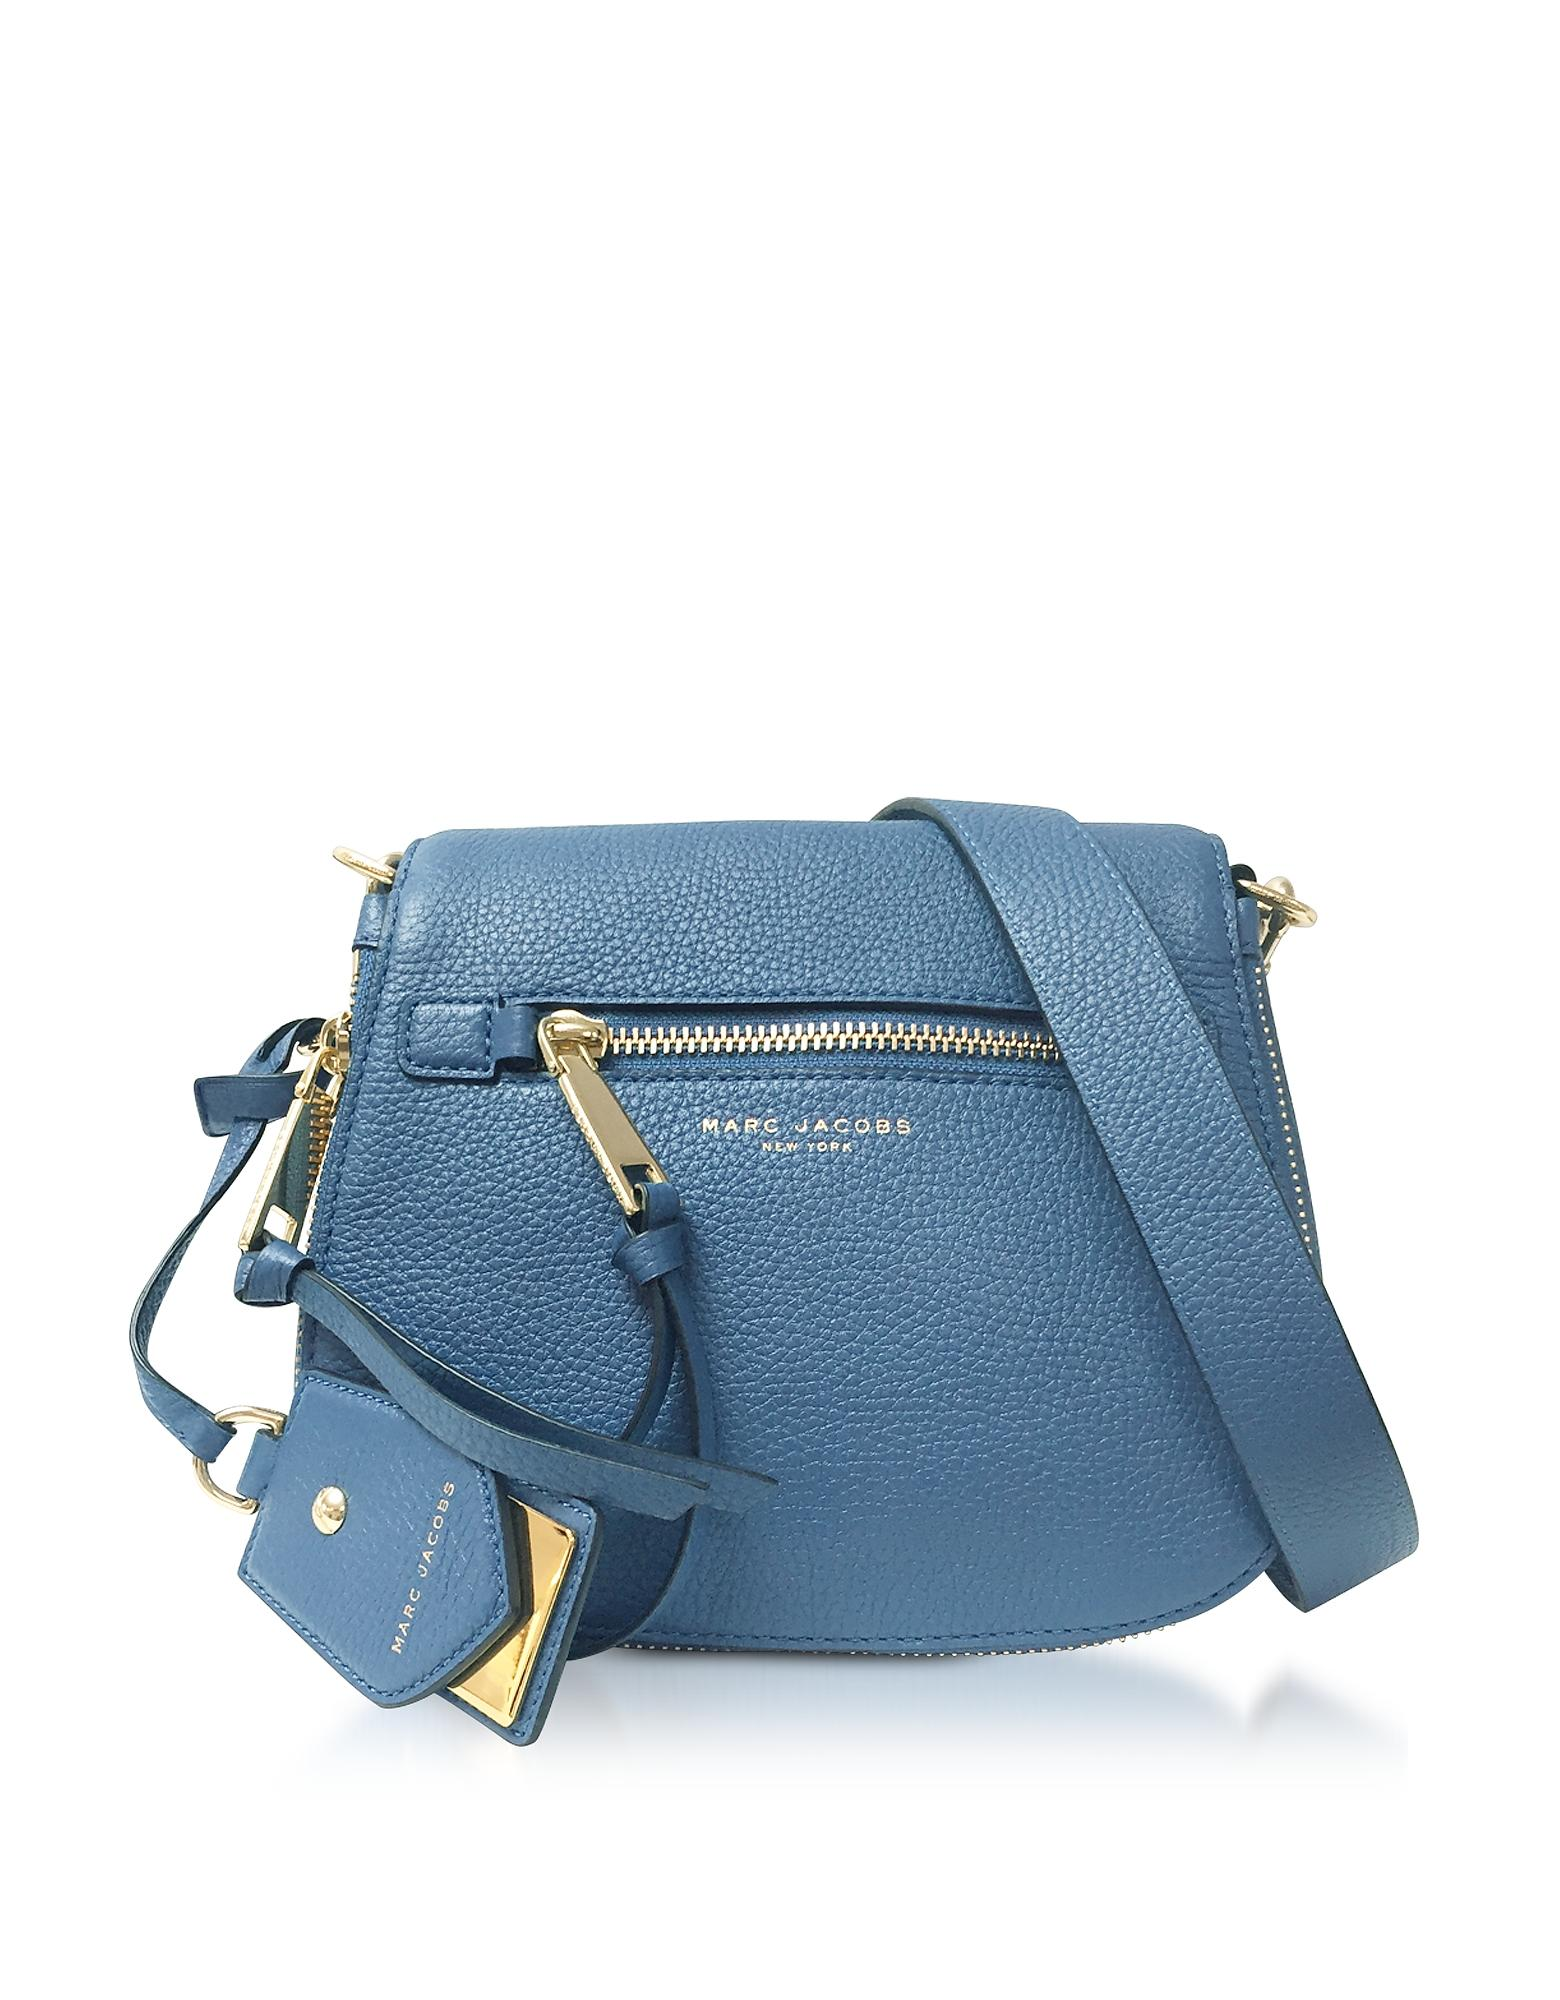 ec66967efc Marc Jacobs Small Recruit Nomad Pebbled Leather Crossbody Bag - Blue In  Vintage Blue